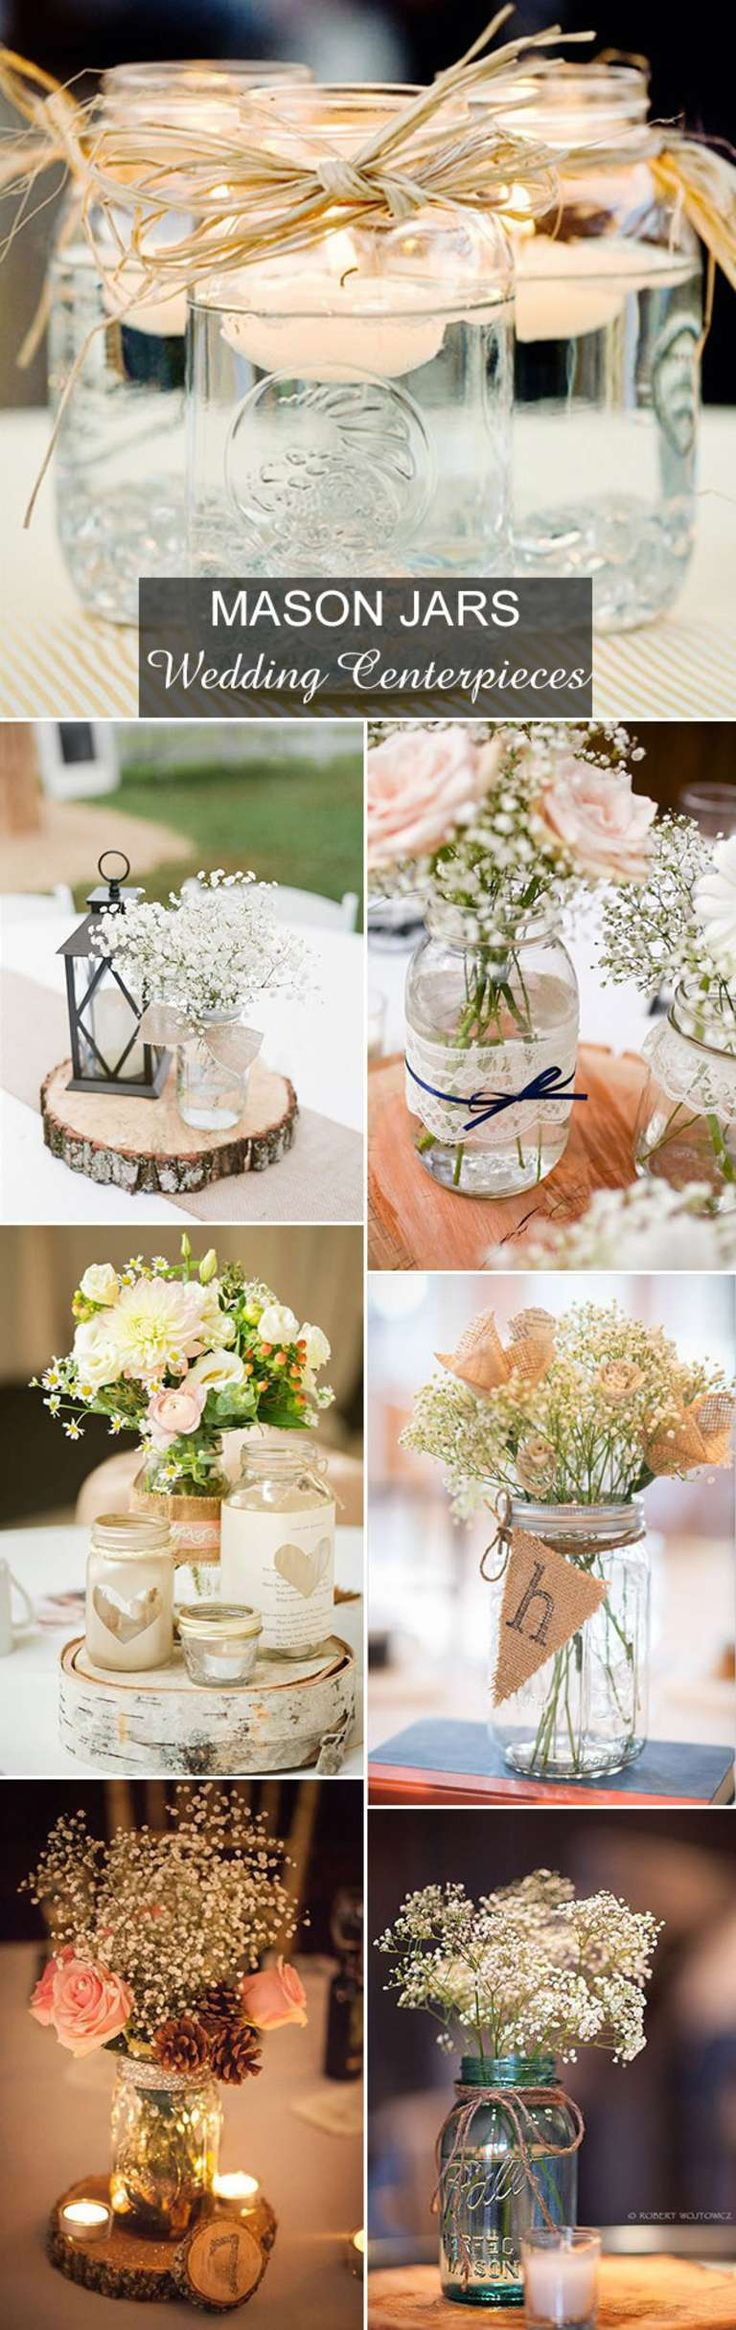 Super Awesome Ways To Use Mason Jars At Your Wedding! You'll Love Them All!